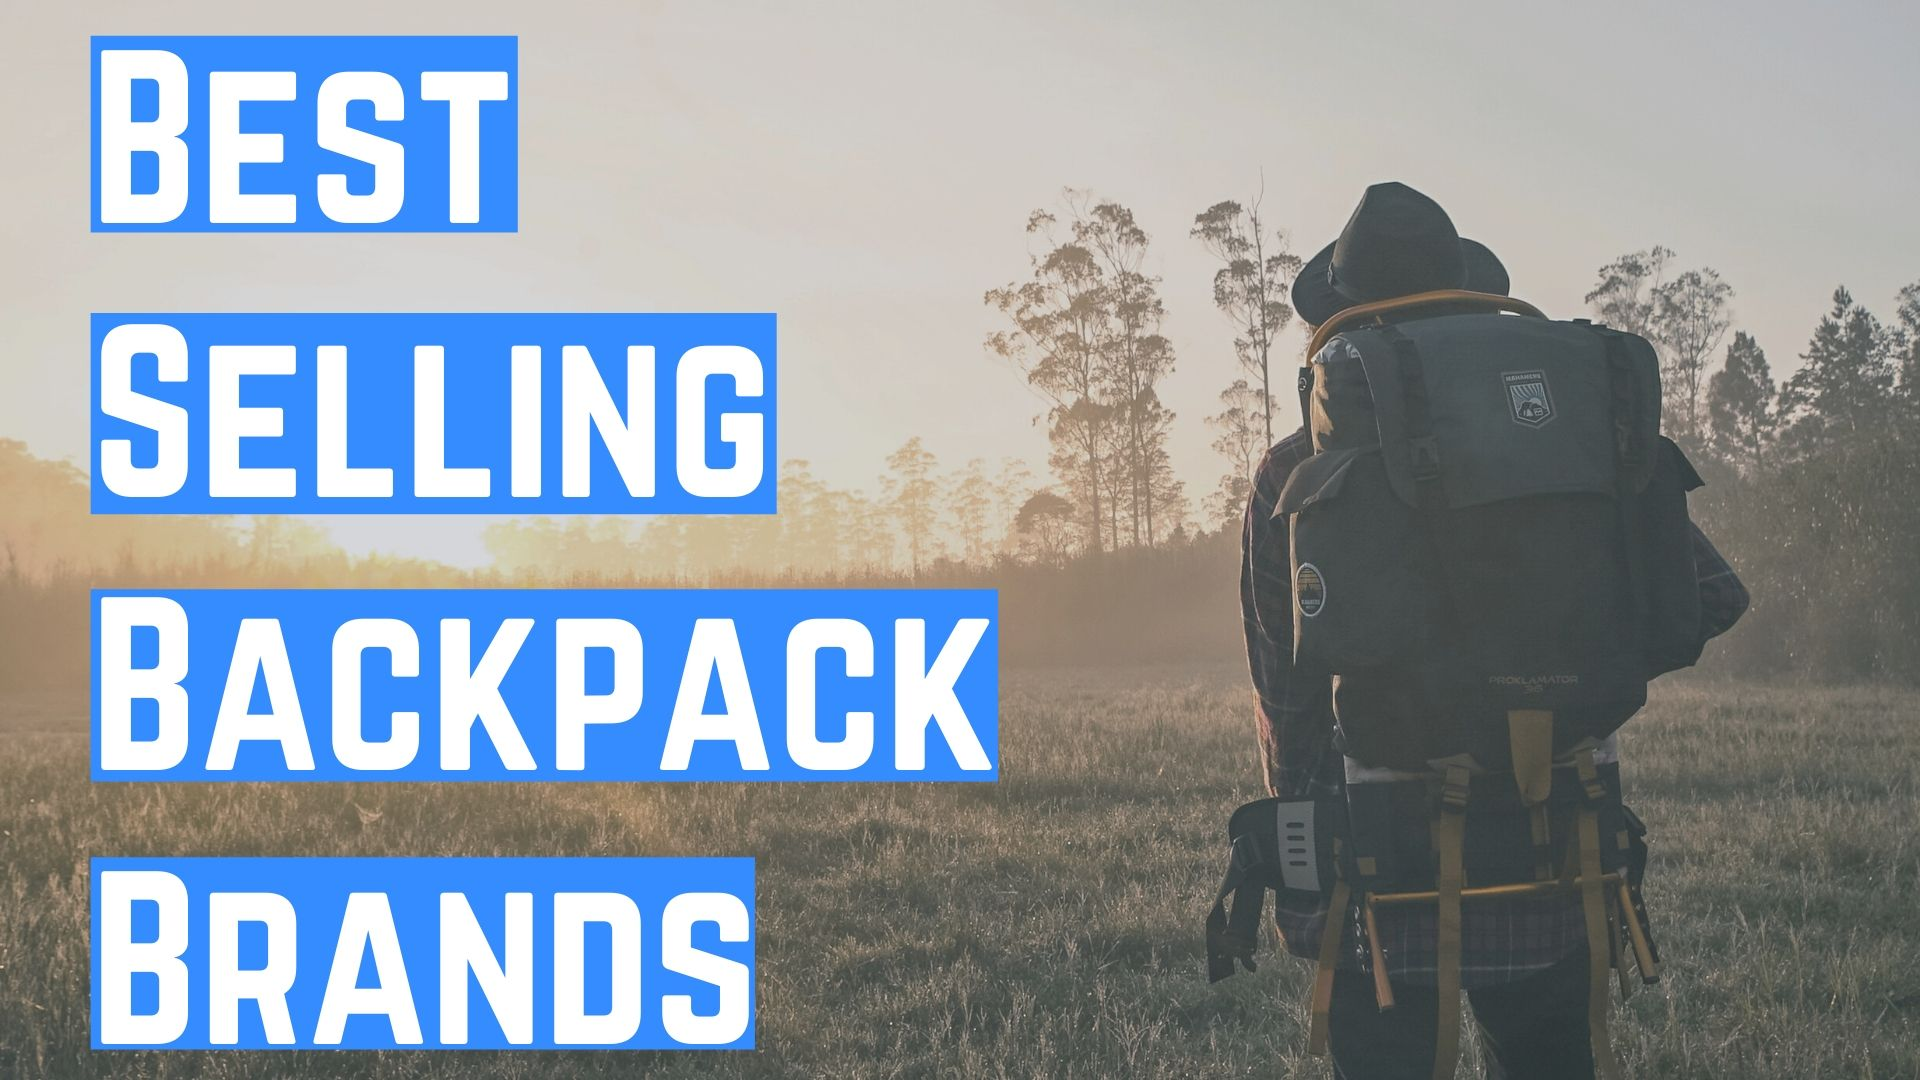 Best Selling Backpack Brands